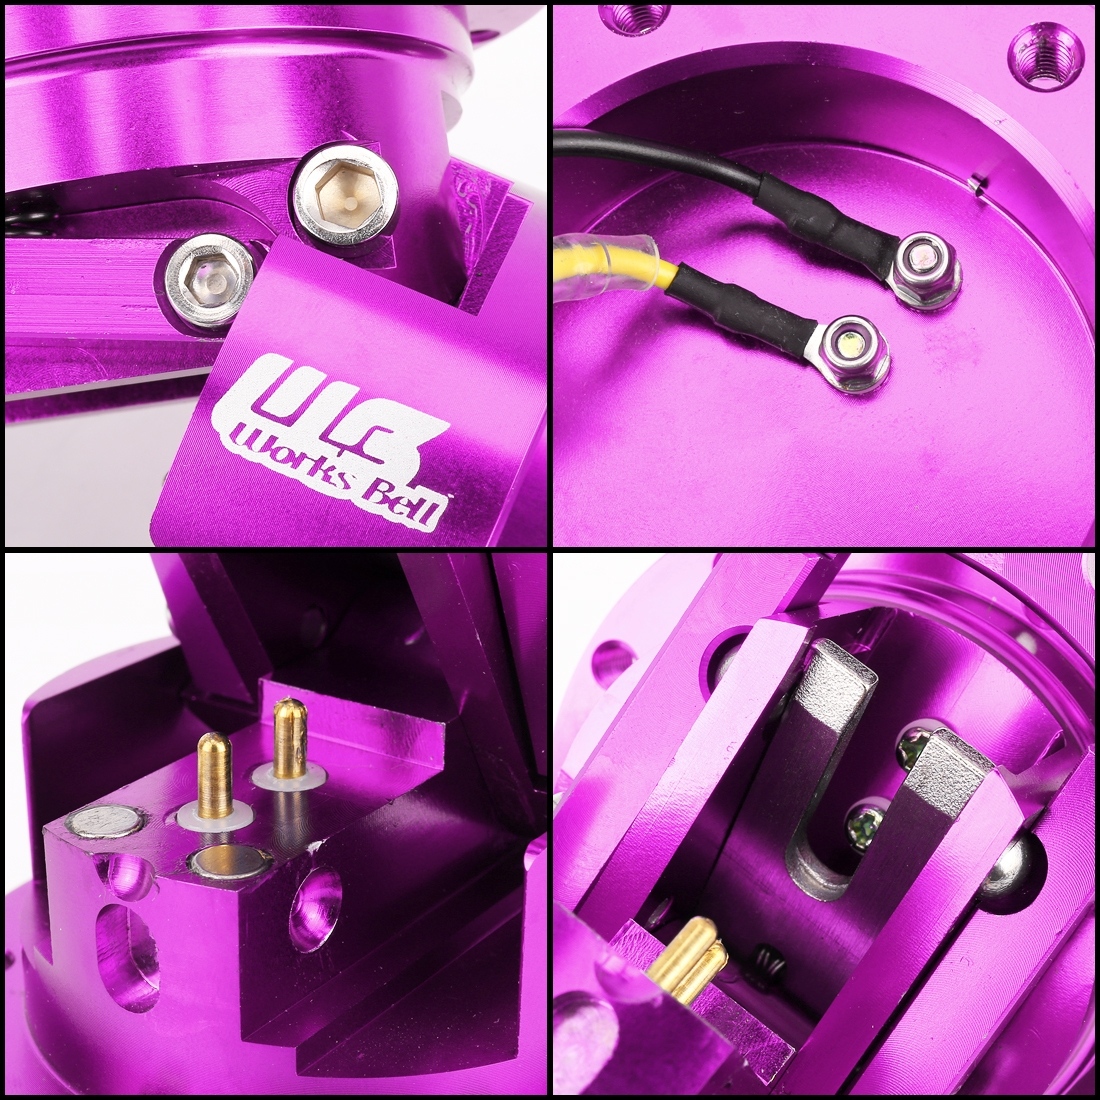 Car Tilt Racing Steering Wheel Quick Release Hub Kit Adapter Body Removable Snap Off Boss Kit (Purple)